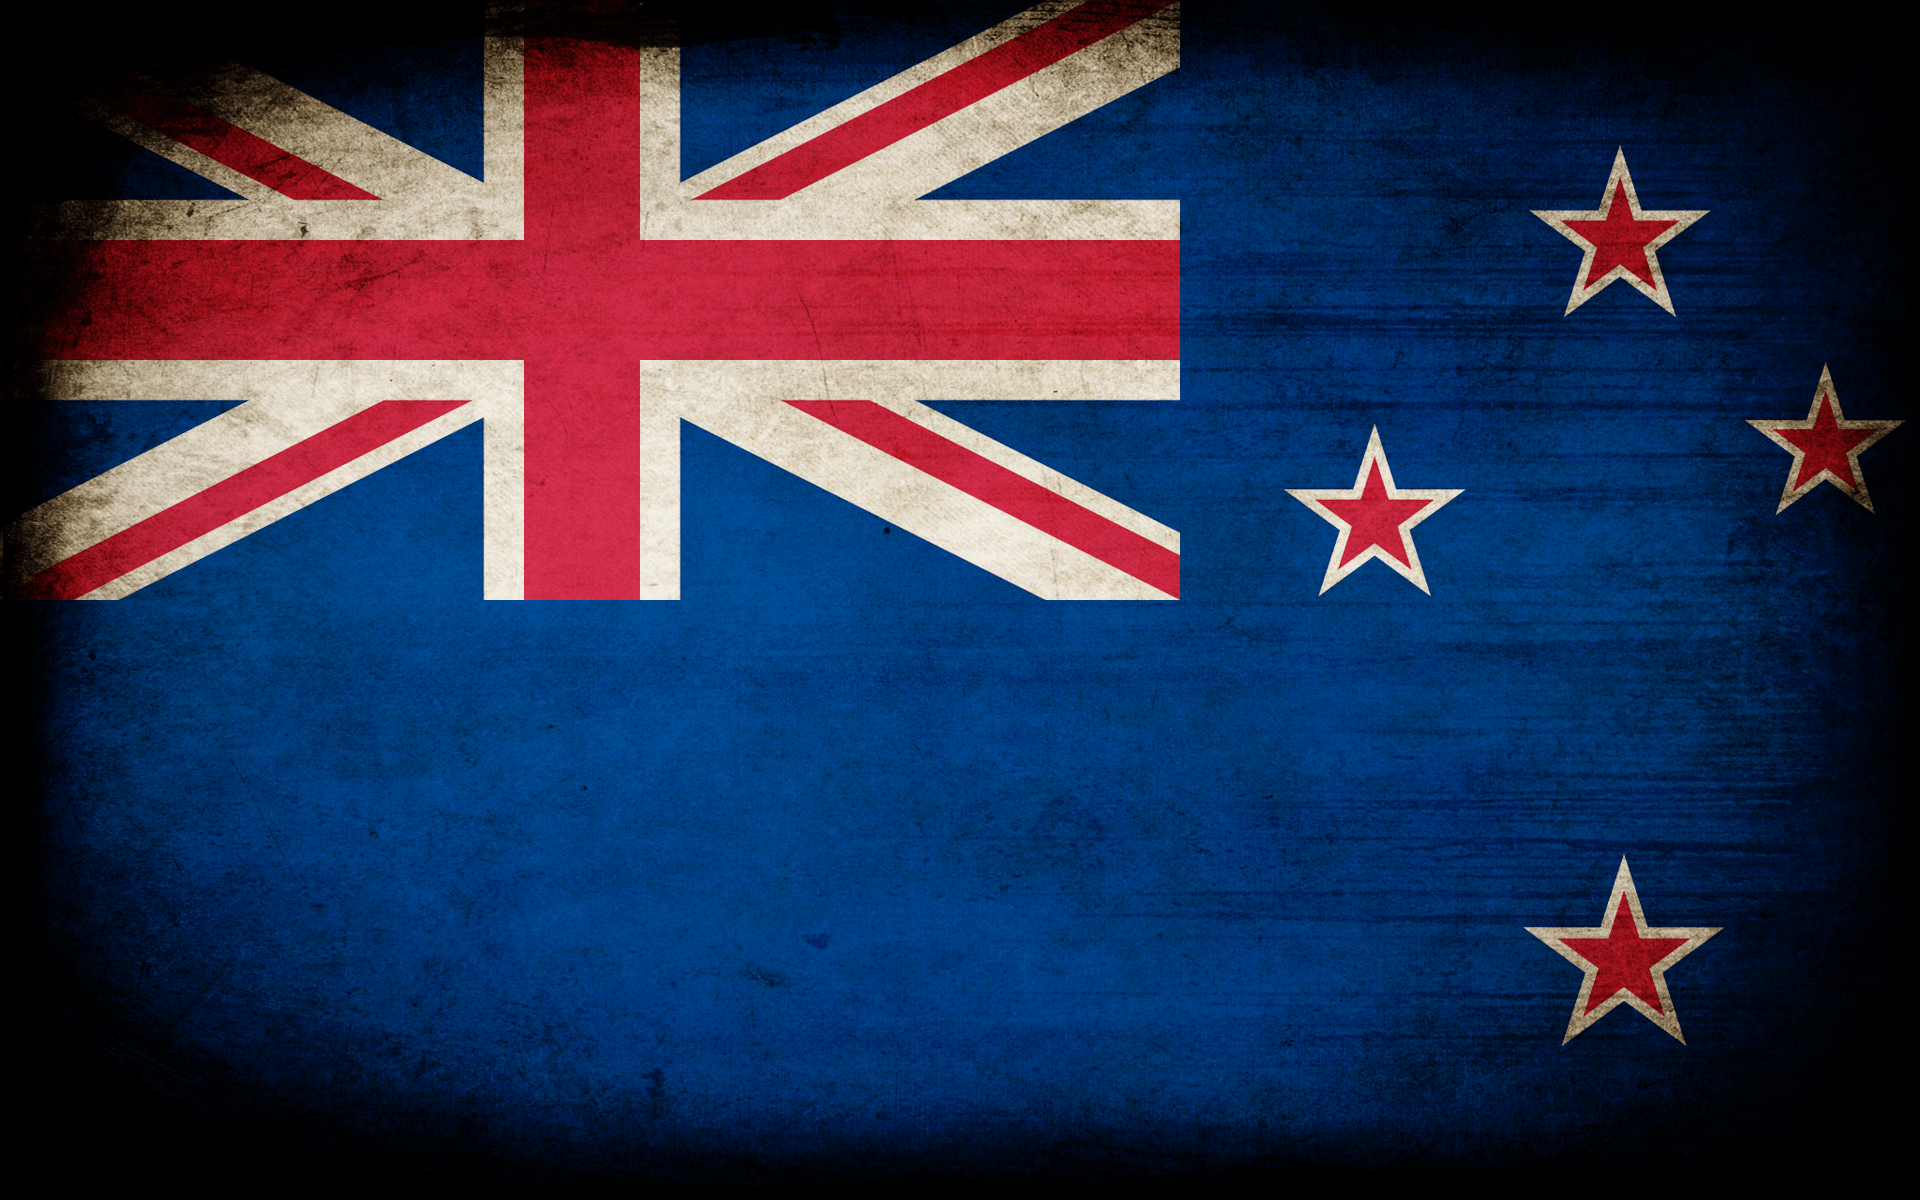 New Zealand Flag Wallpaper: Germany Flag Wallpapers 2017